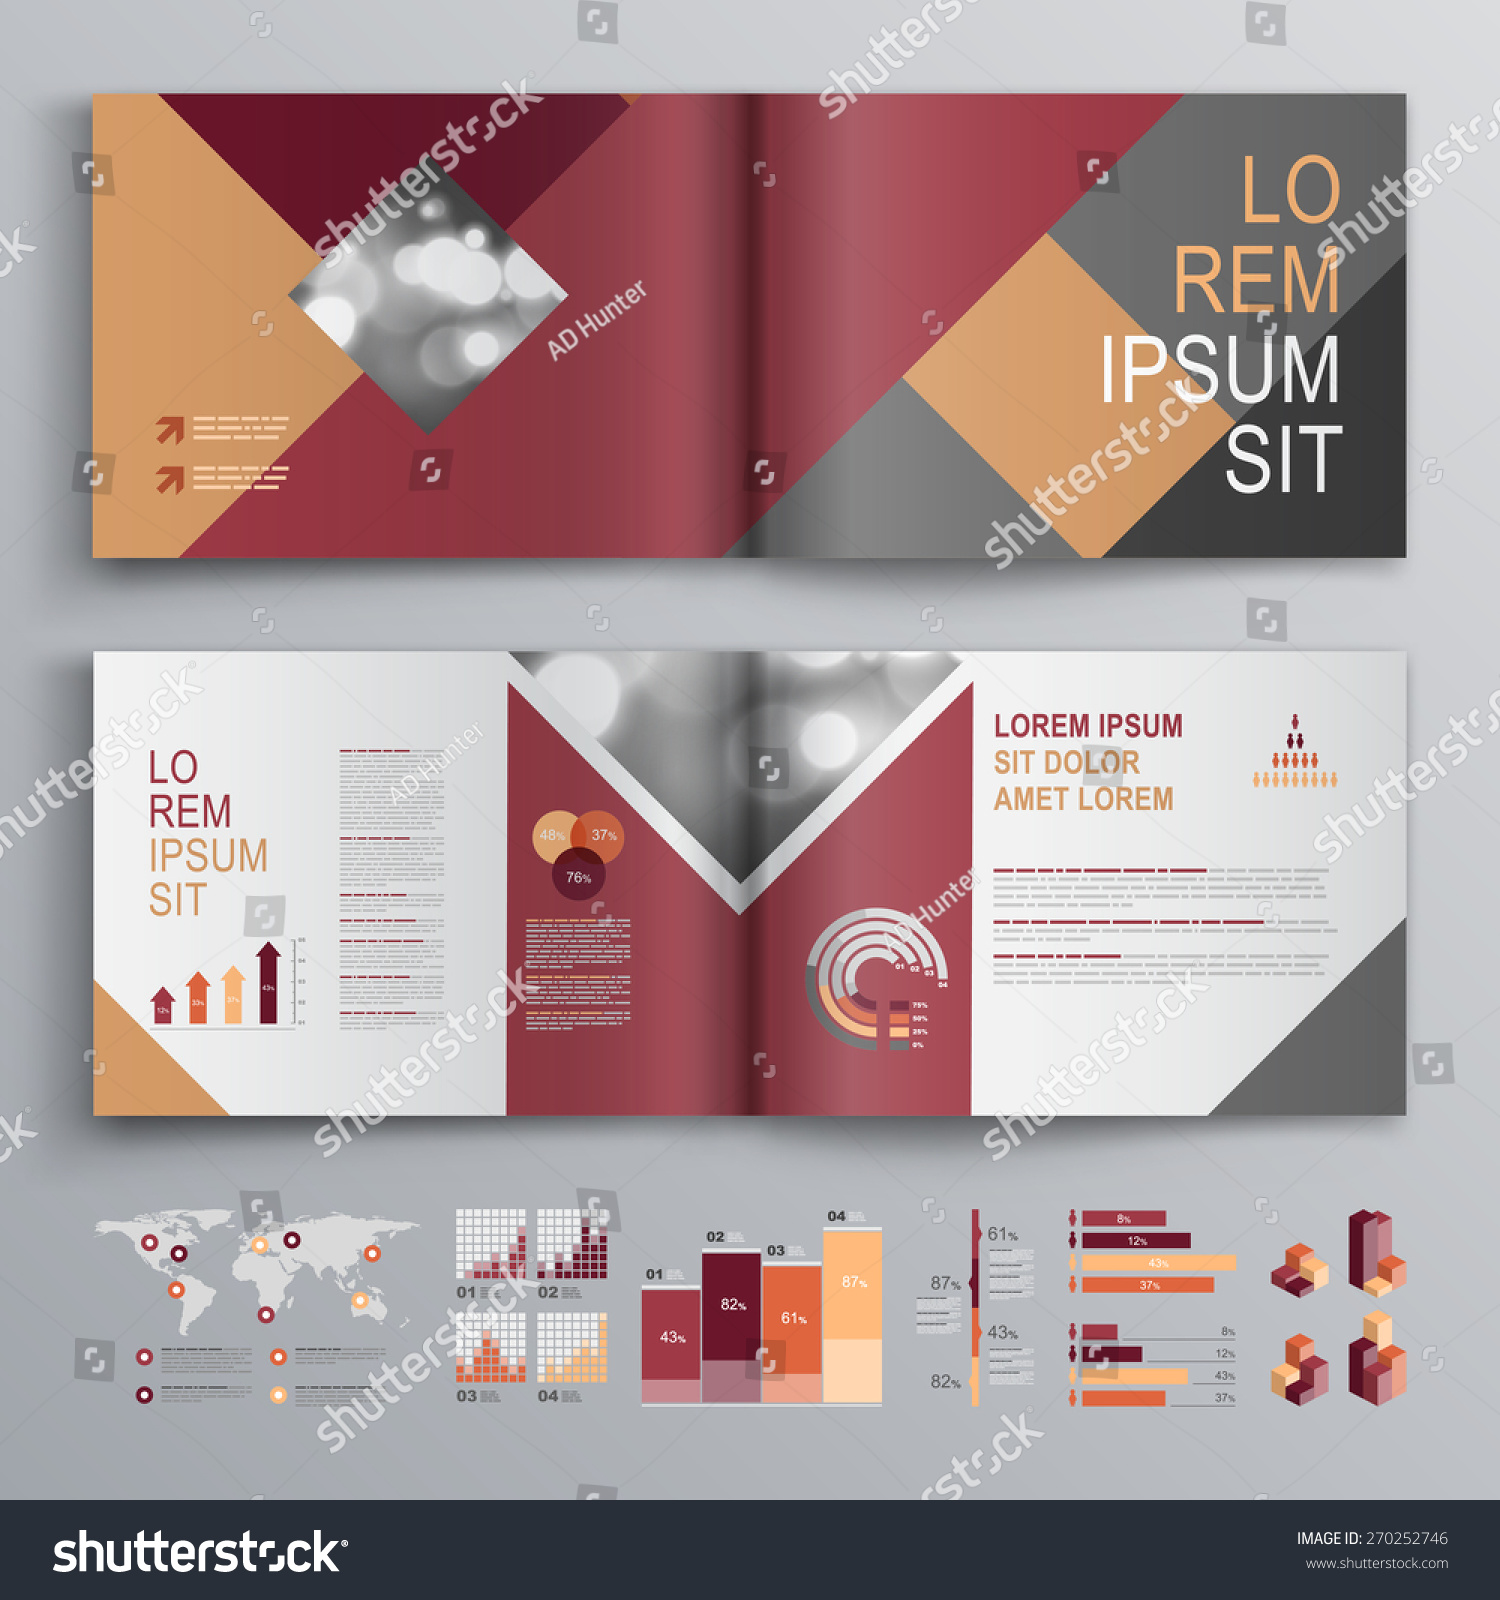 Fashion Brochure Template Design Red Gray Vector 270252746 – Fashion Design Brochure Template